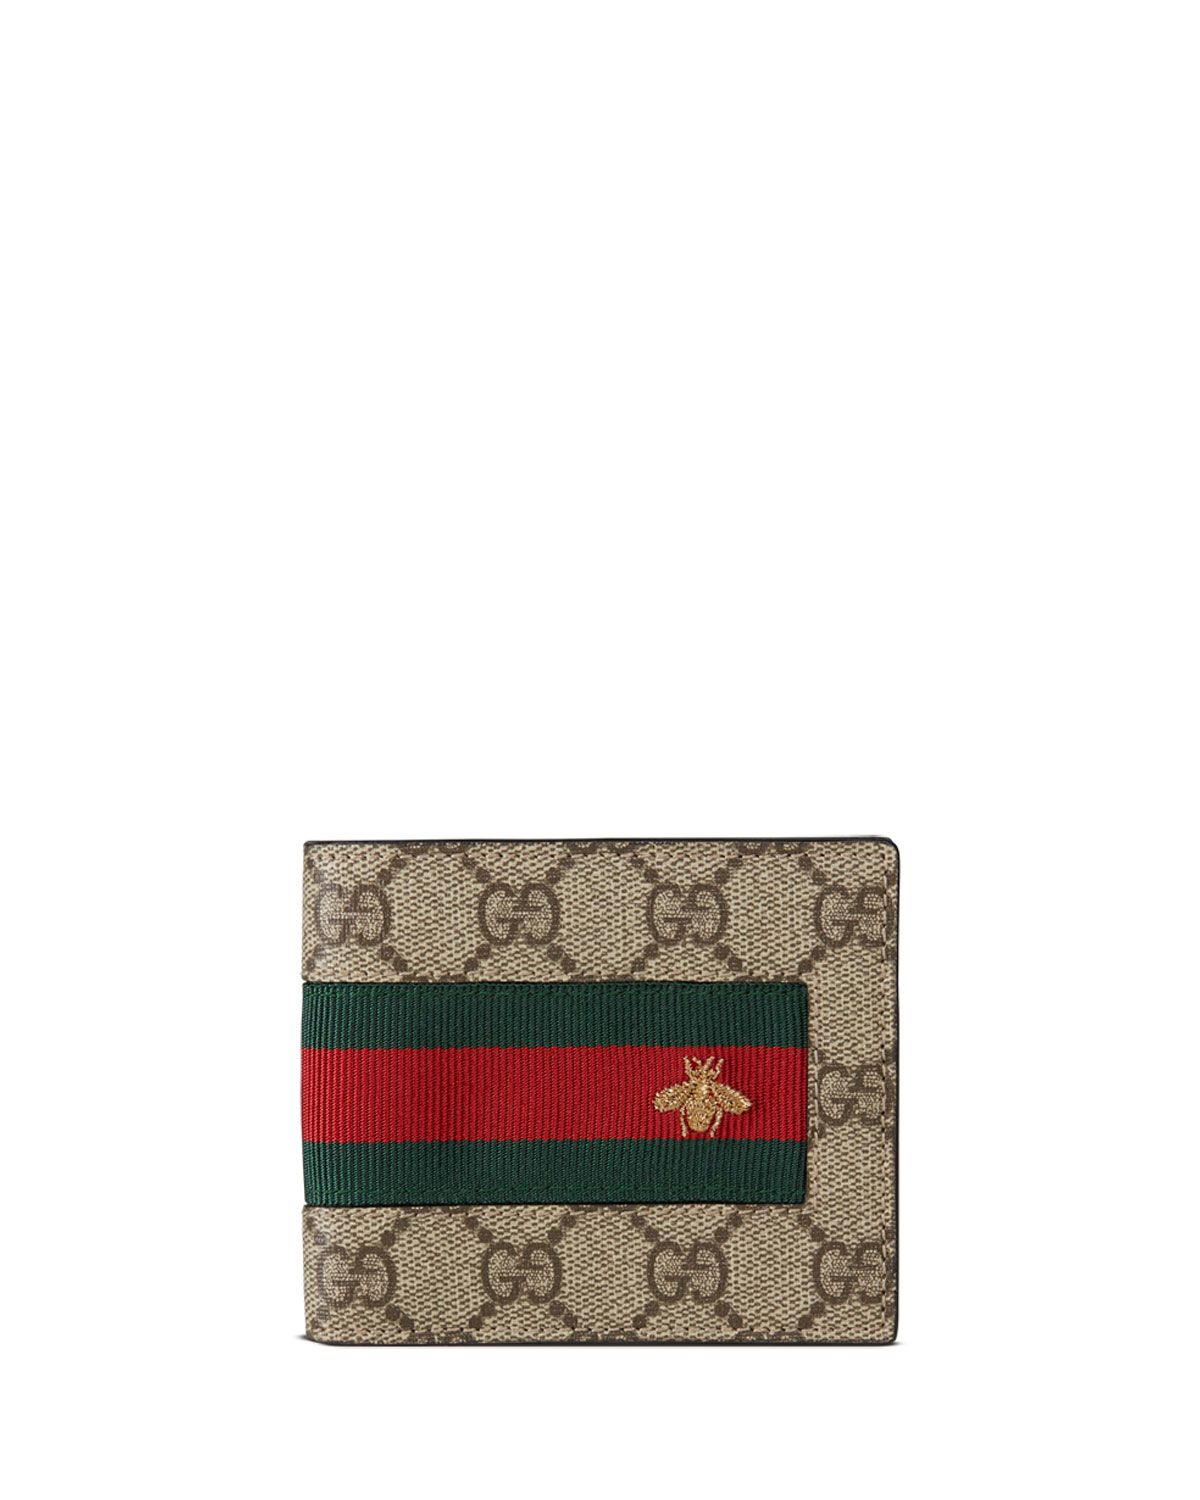 5bf4f8ee174656 Web GG Supreme Bi-Fold Wallet with Bee, Beige - Gucci | *Handbags ...